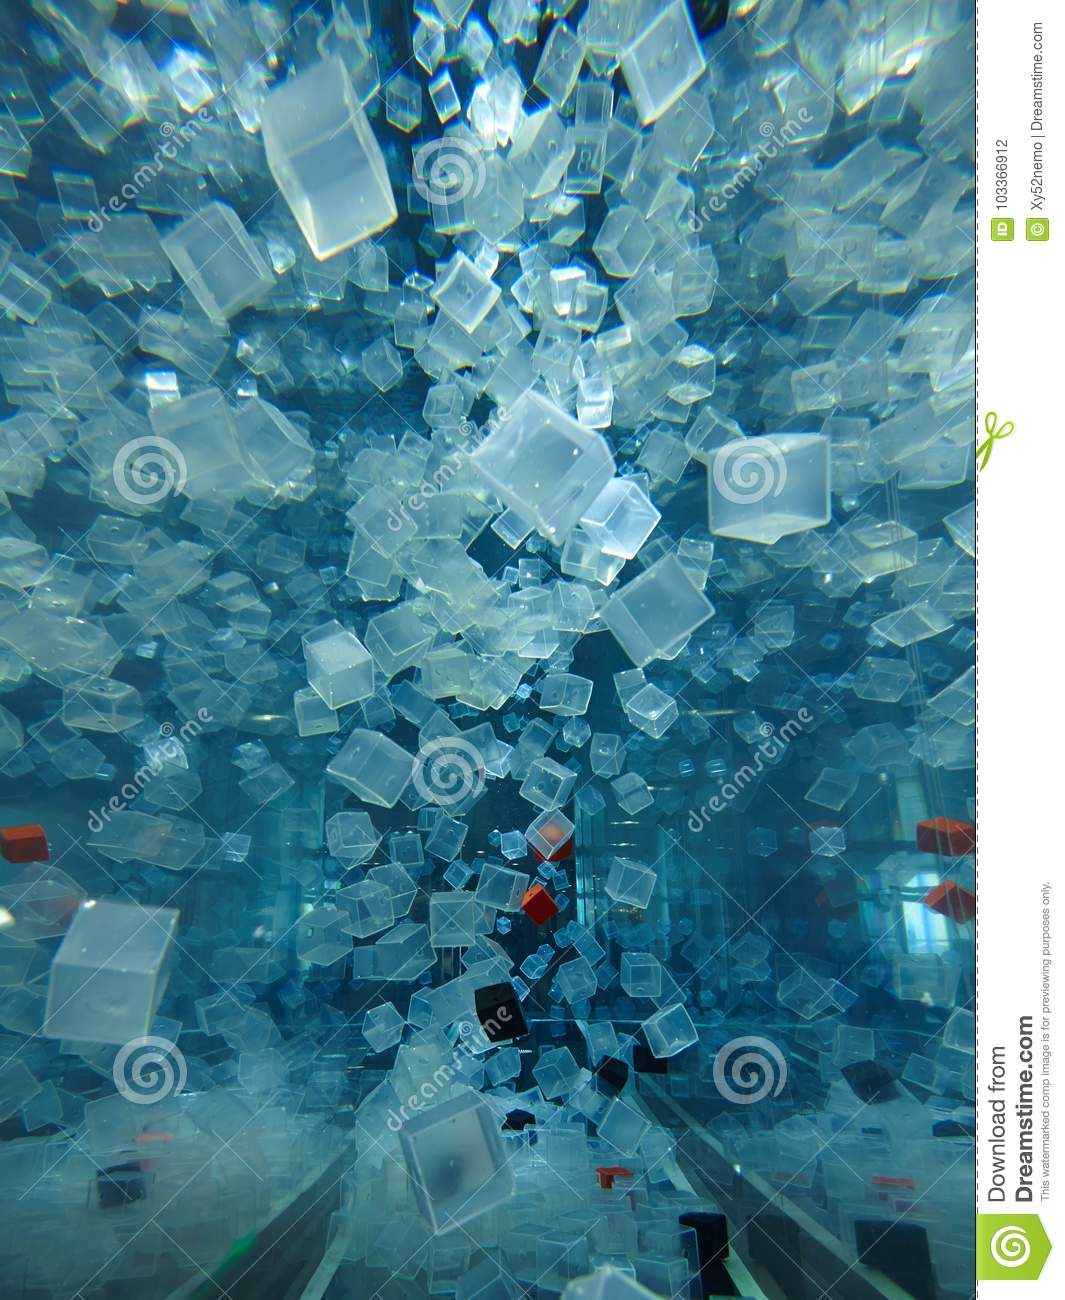 Plastic cubes in water